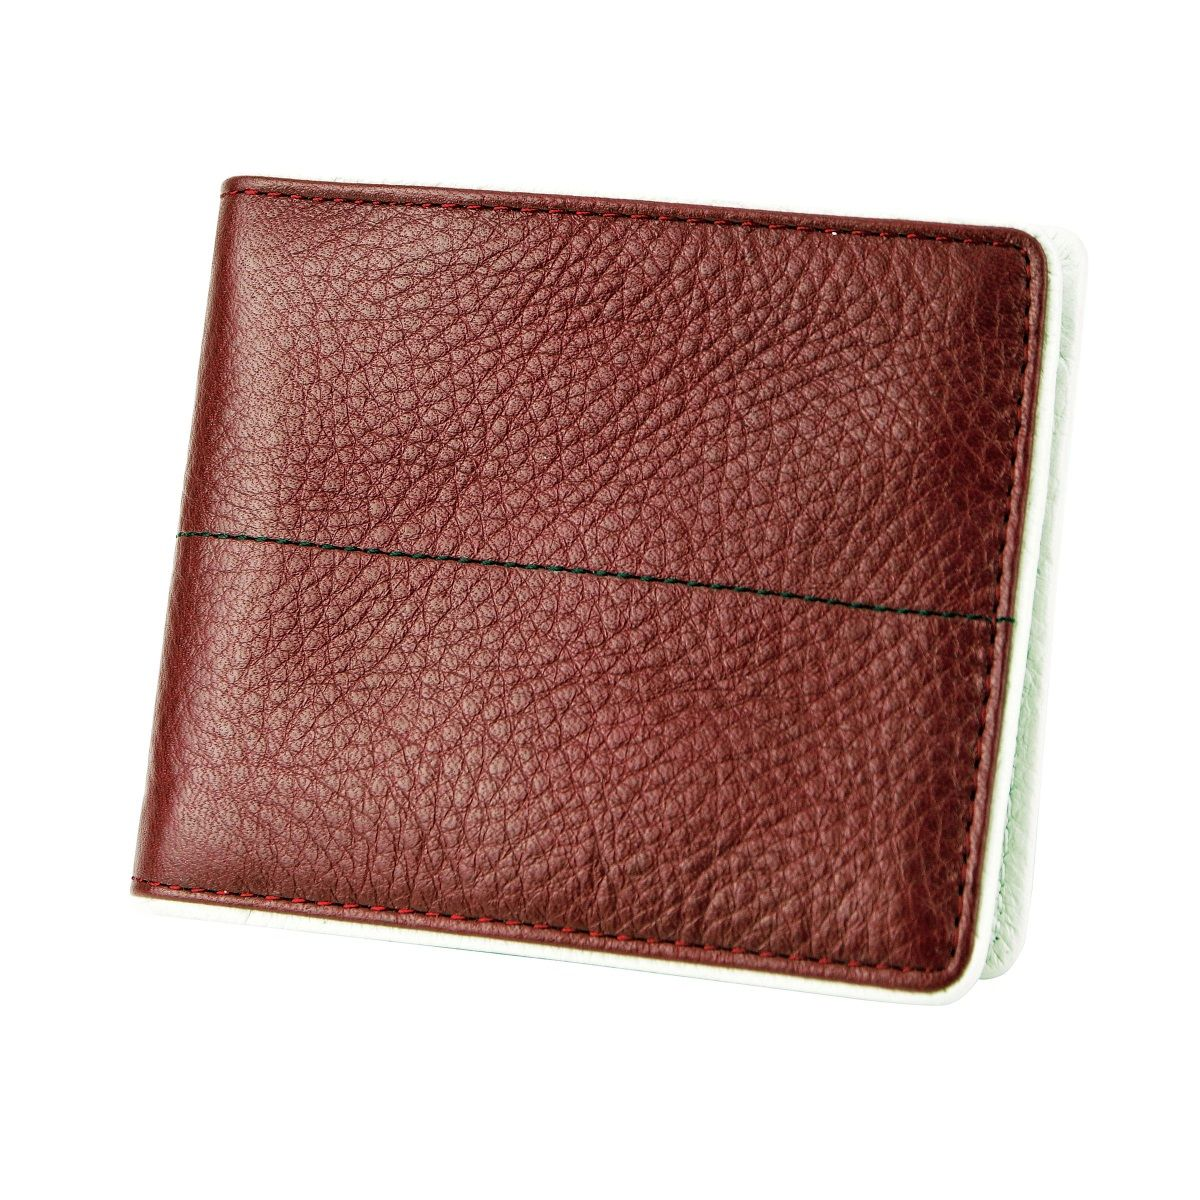 J.FOLD Stitched Panel Leather Wallet - Red